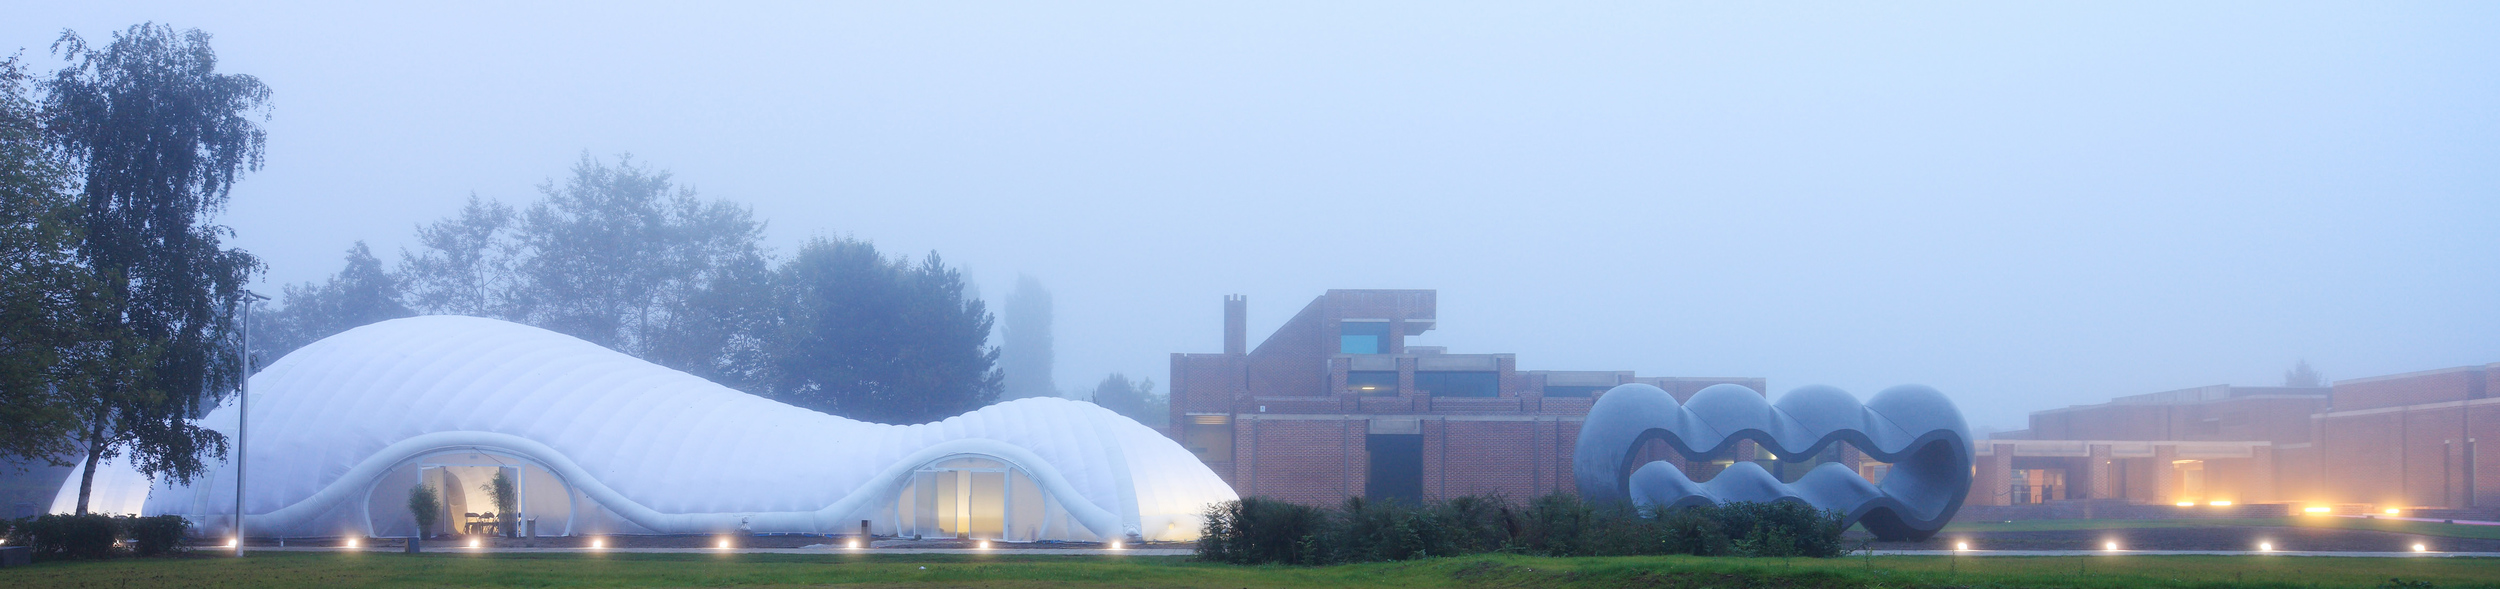 The pavilion at dawn, against the rectilinear backdrop of the museum (Photo: Yves Morfouace)